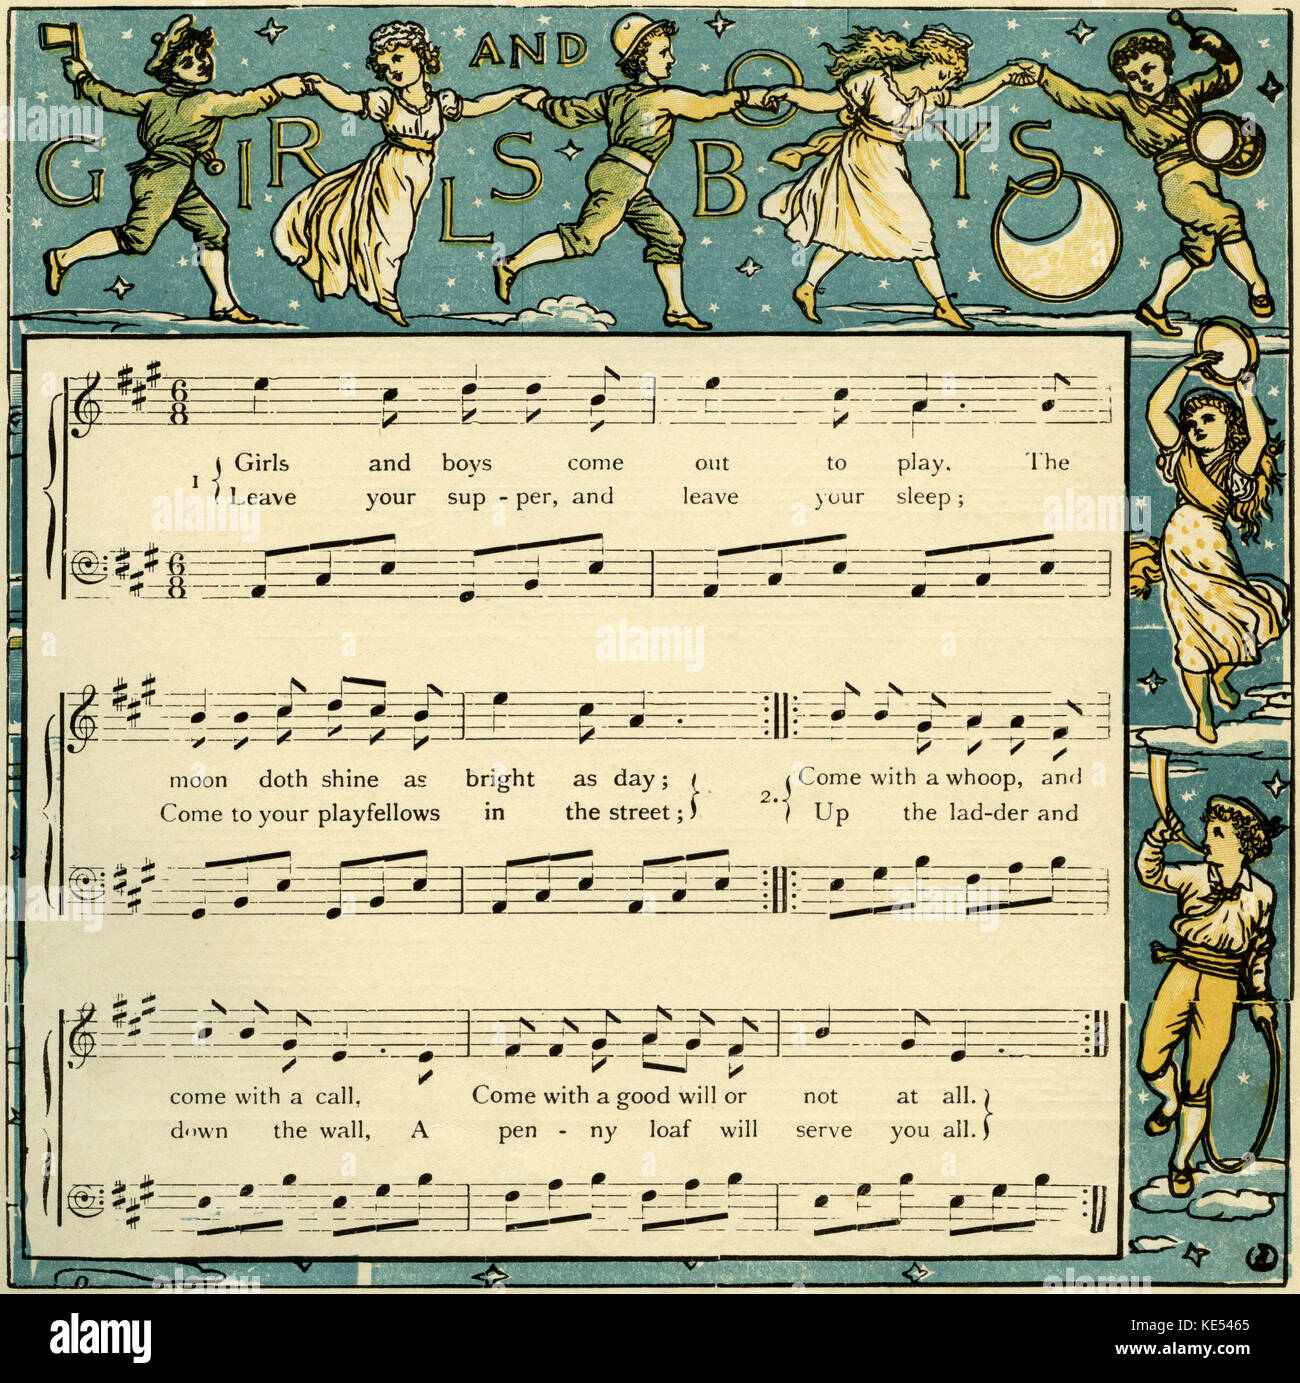 Girls and boys come out to play, nursery rhyme illustration (1877) by Walter Crane. English artist of Arts and Crafts - Stock Image